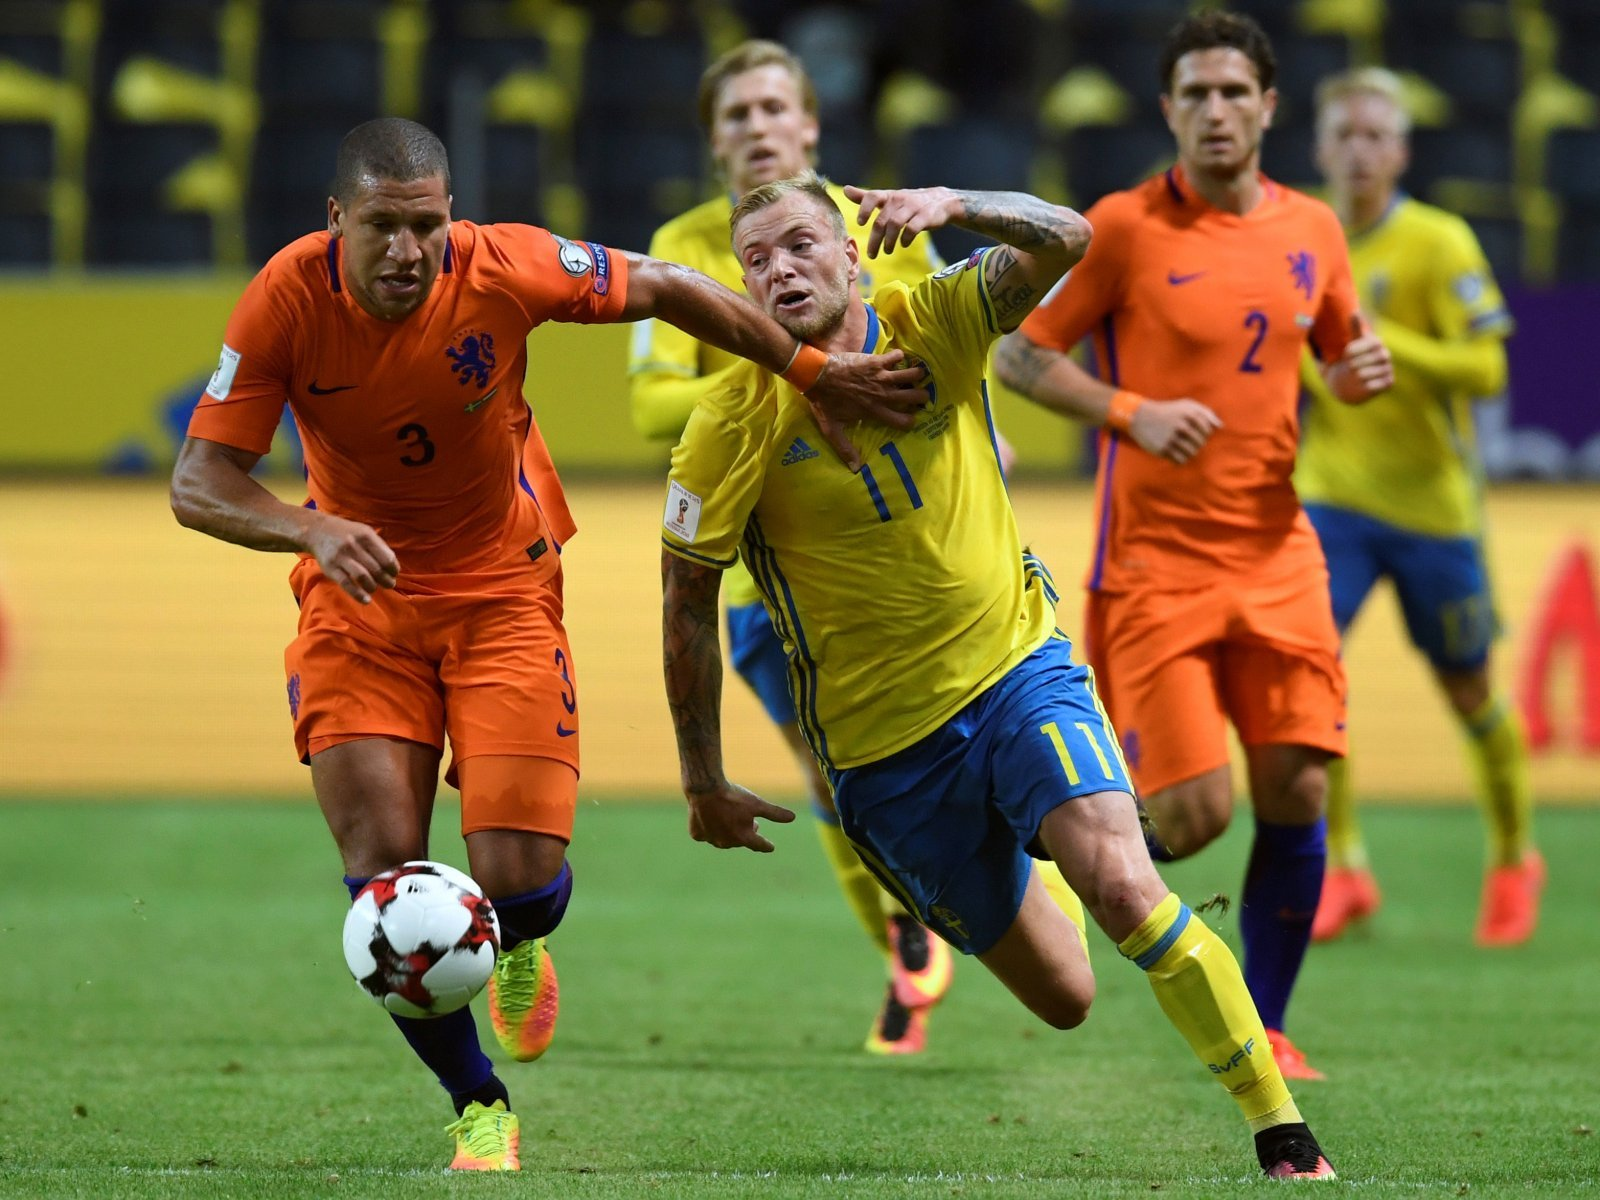 Celtic must put Denayer disappointment behind them and sign Jeffrey Bruma